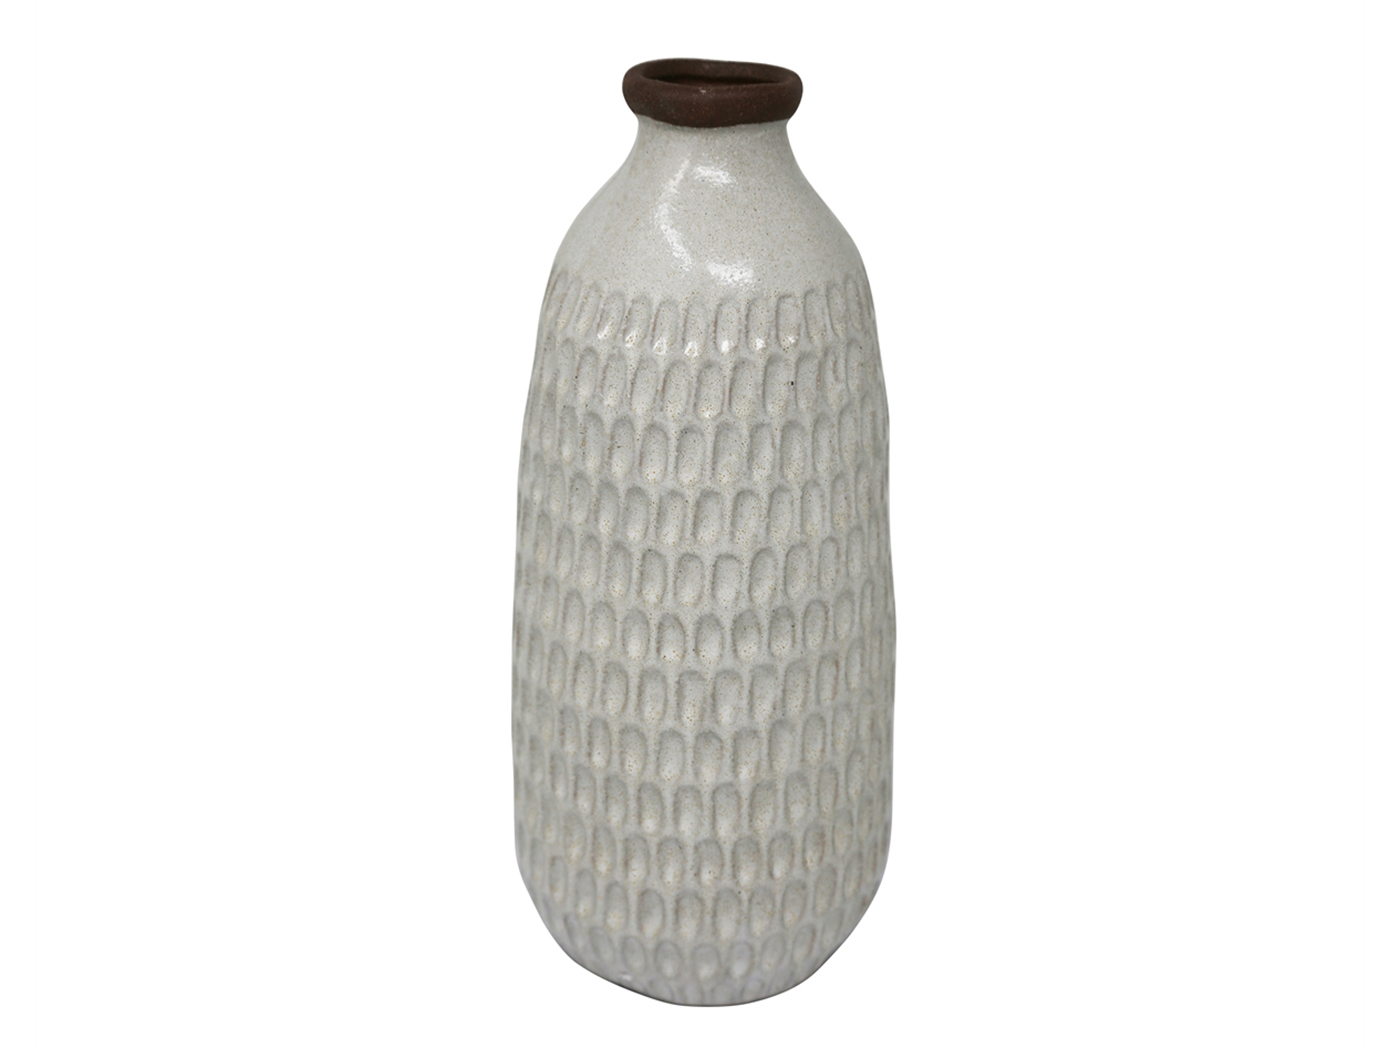 "Large Ivory Ceramic Hammered Vase 5.25""W x 12.25""H"